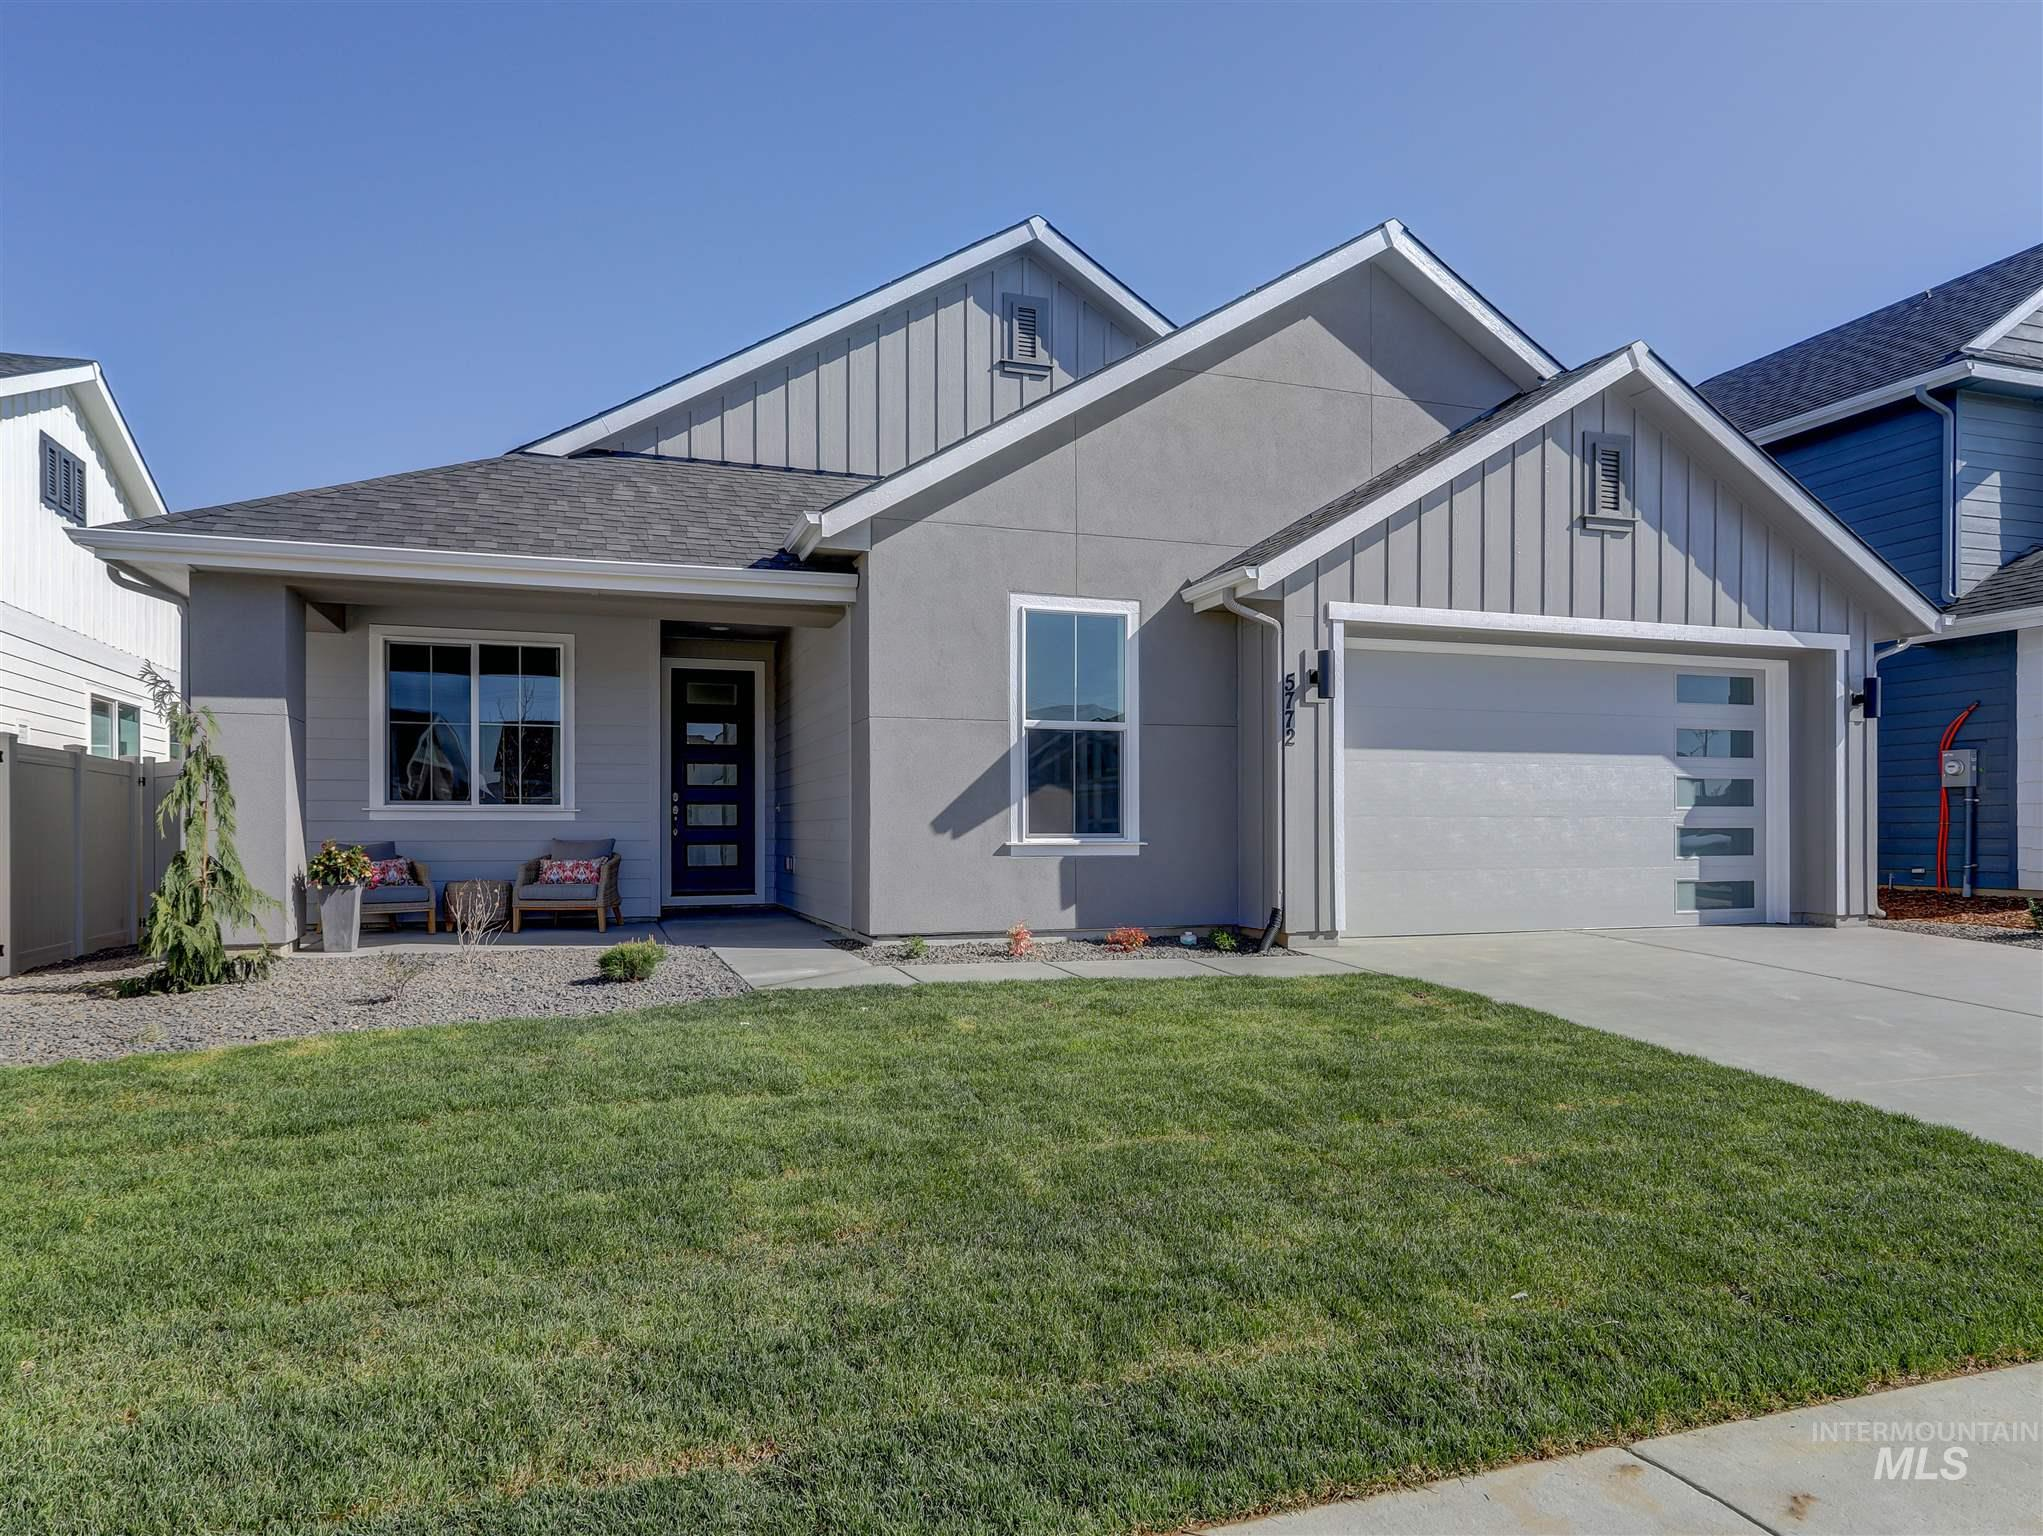 5772 W Riva Capri St Property Photo - Meridian, ID real estate listing